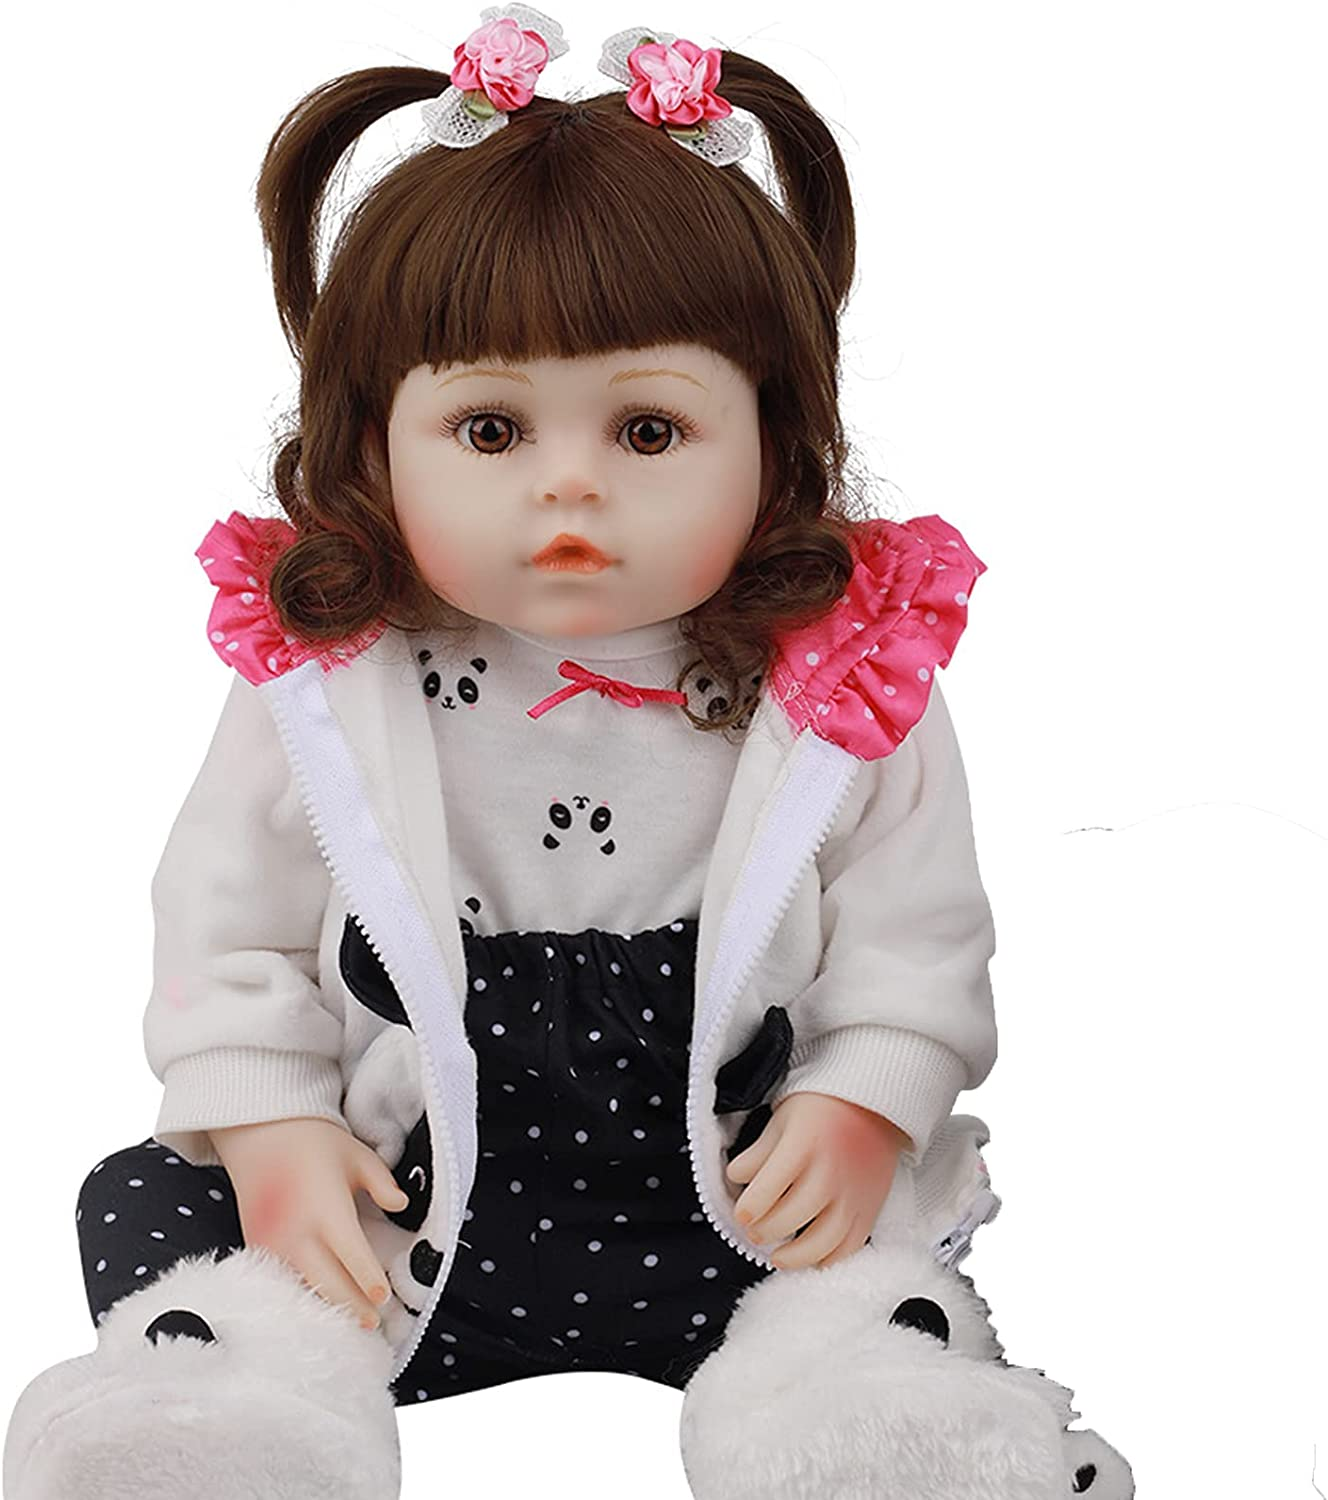 wuxafe Toddler Doll Realistic Reborn Baby Open Eyes Gi Handmade All stores Cheap bargain are sold